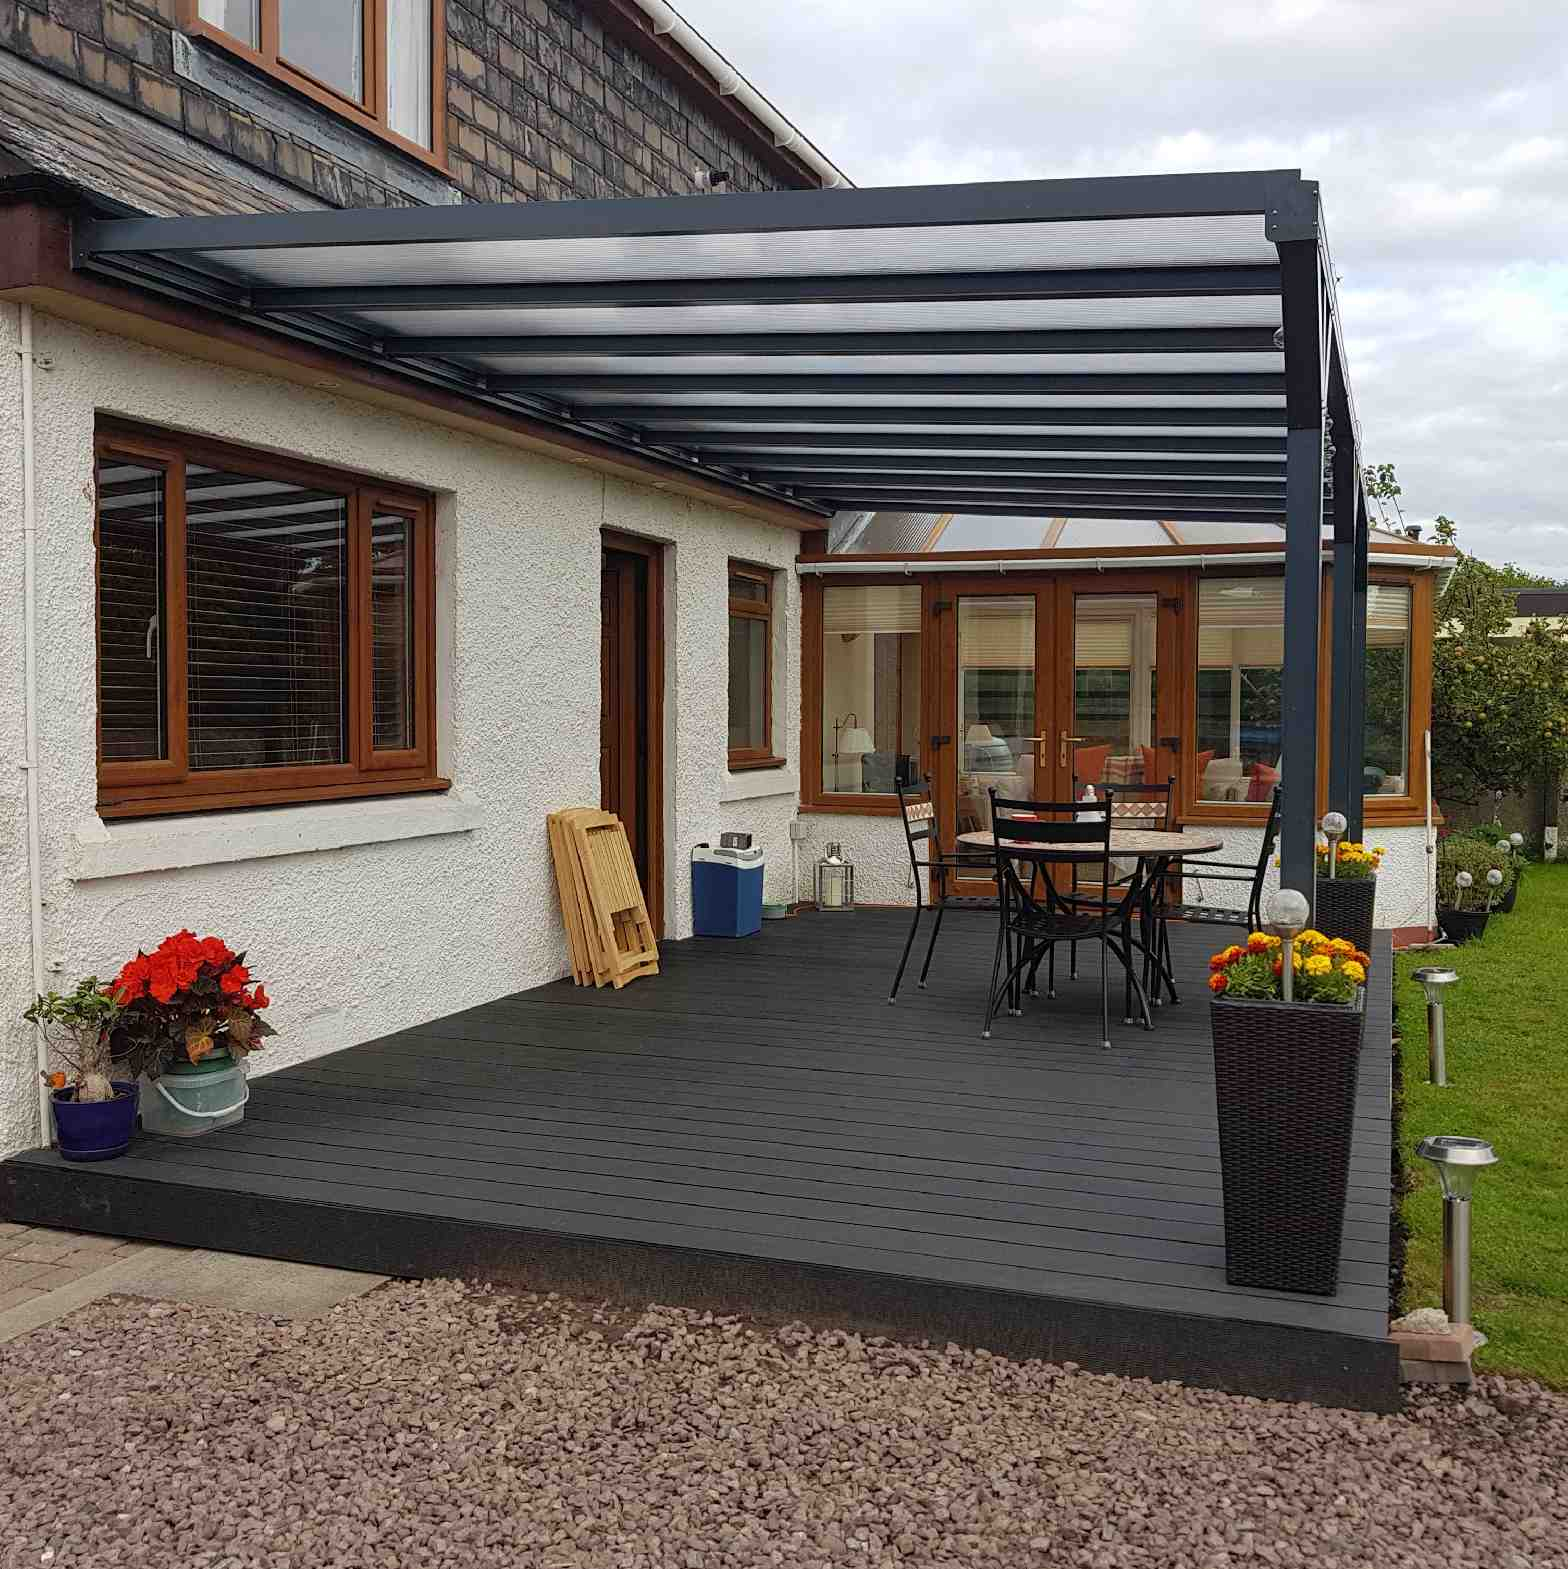 Buy Omega Verandah, Anthracite Grey, 6mm Glass Clear Plate Polycarbonate Glazing - 6.3m (W) x 4.0m (P), (4) Supporting Posts online today